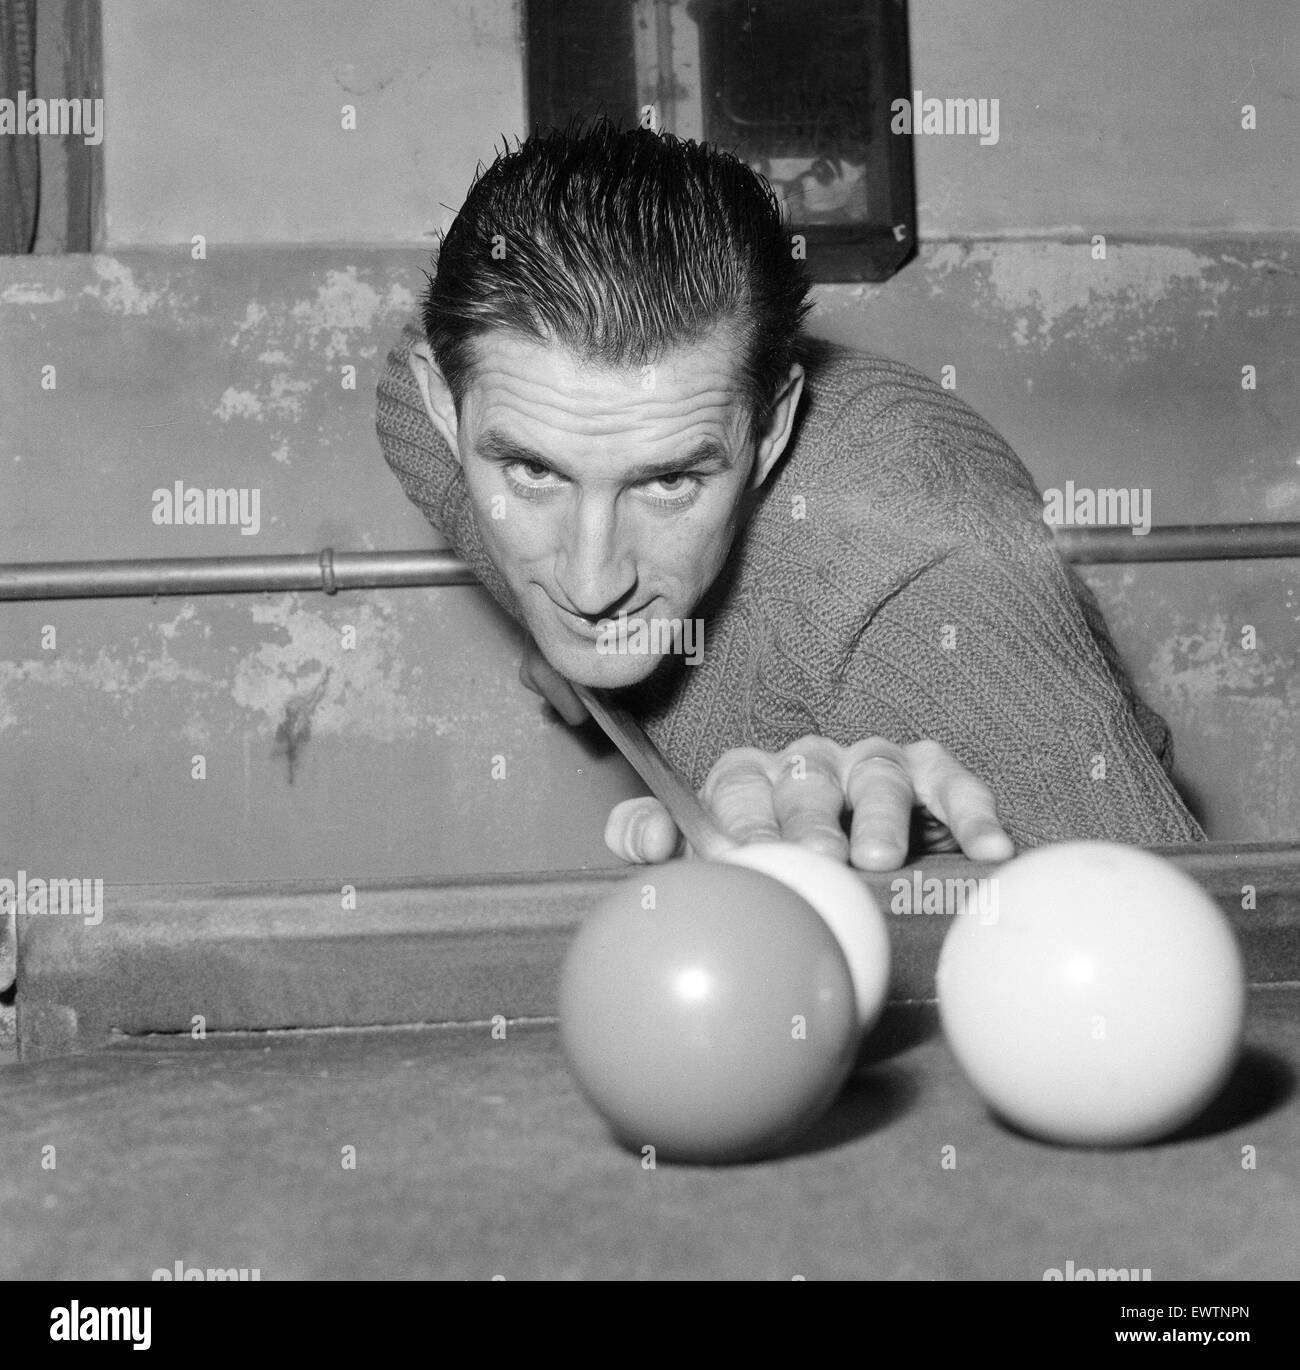 Reading FC 1959/60. Football Players. 11th November 1959. Playing Snooker. ID To Be Confirmed. - Stock Image